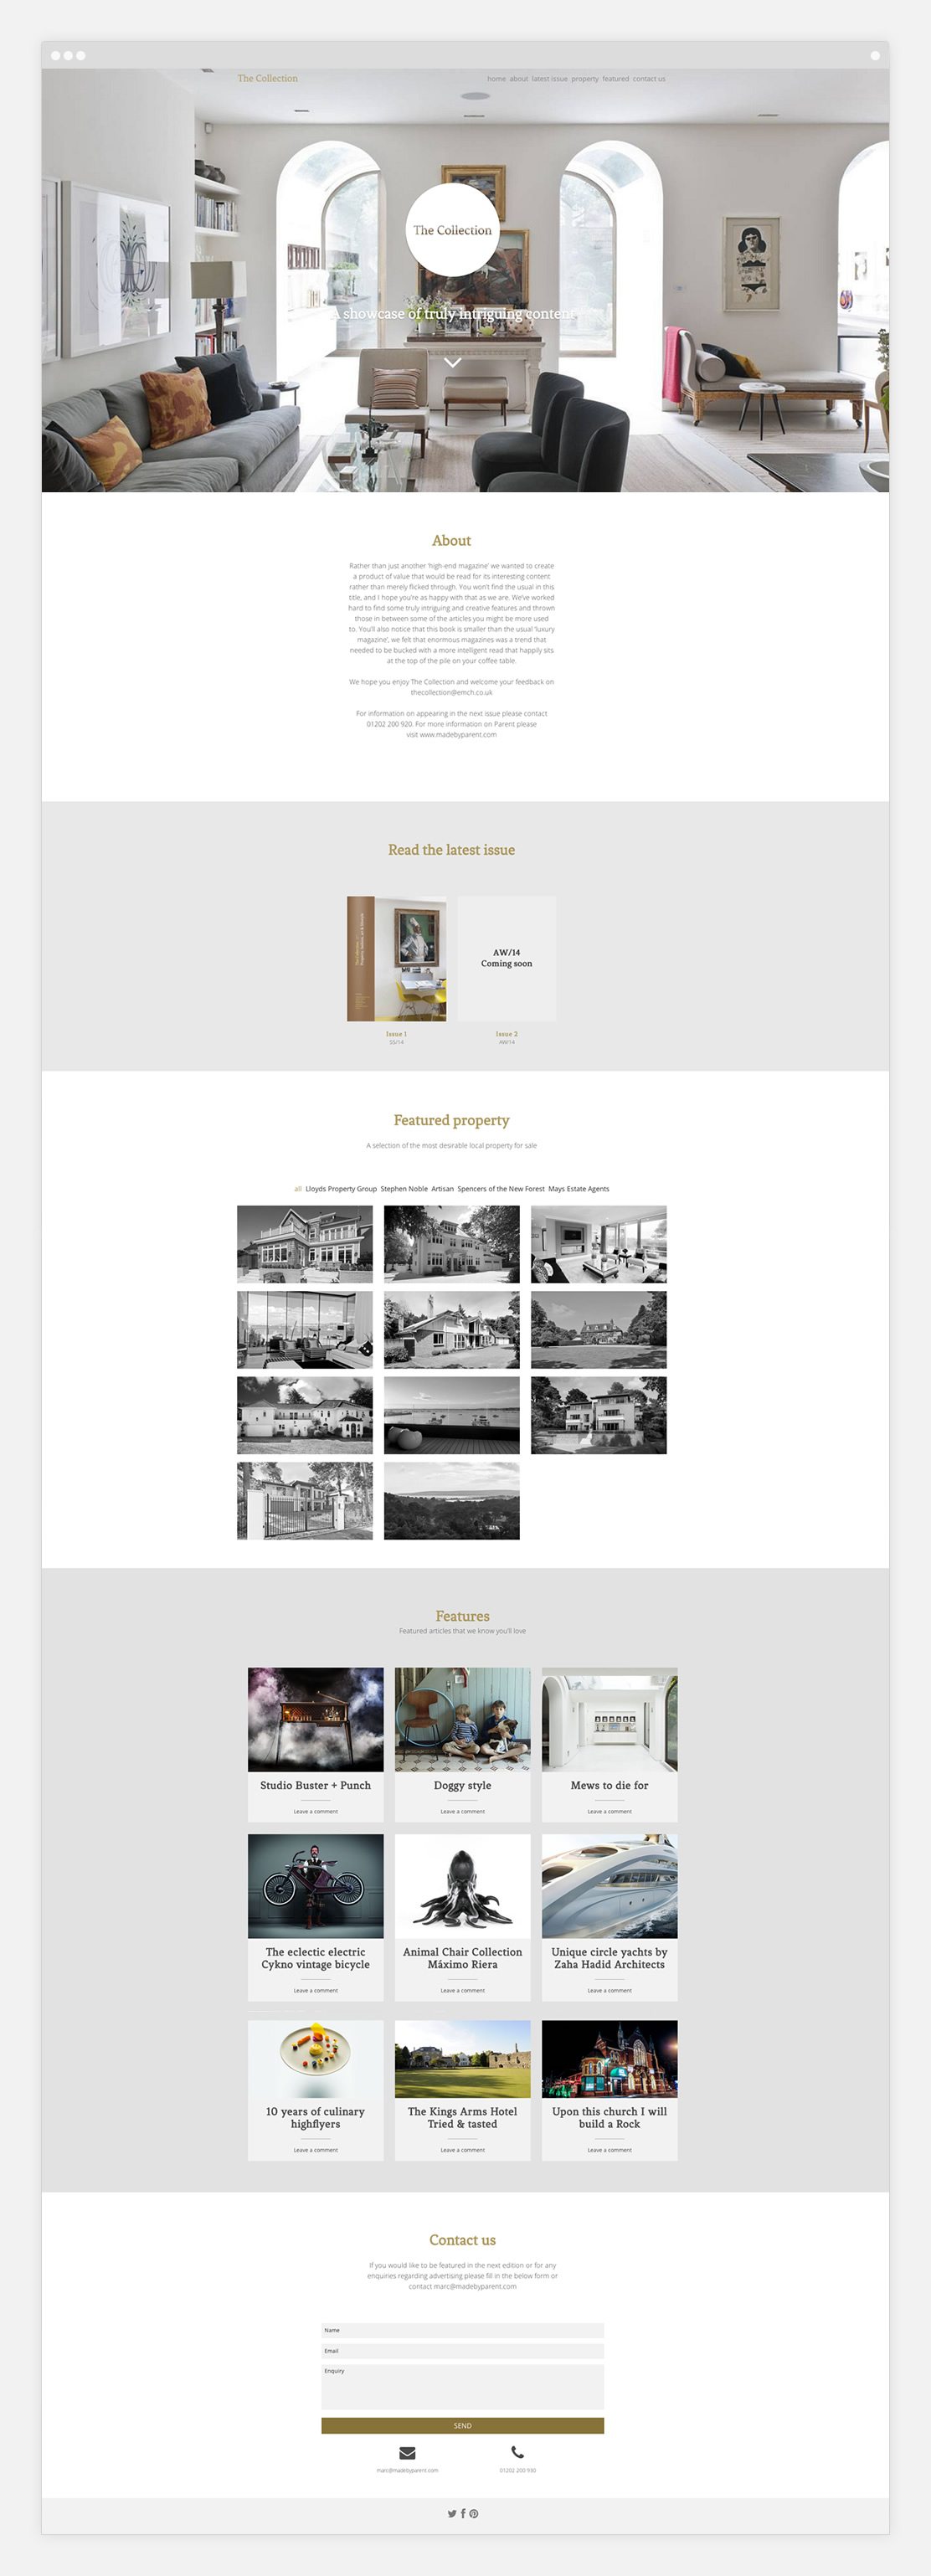 The collection website